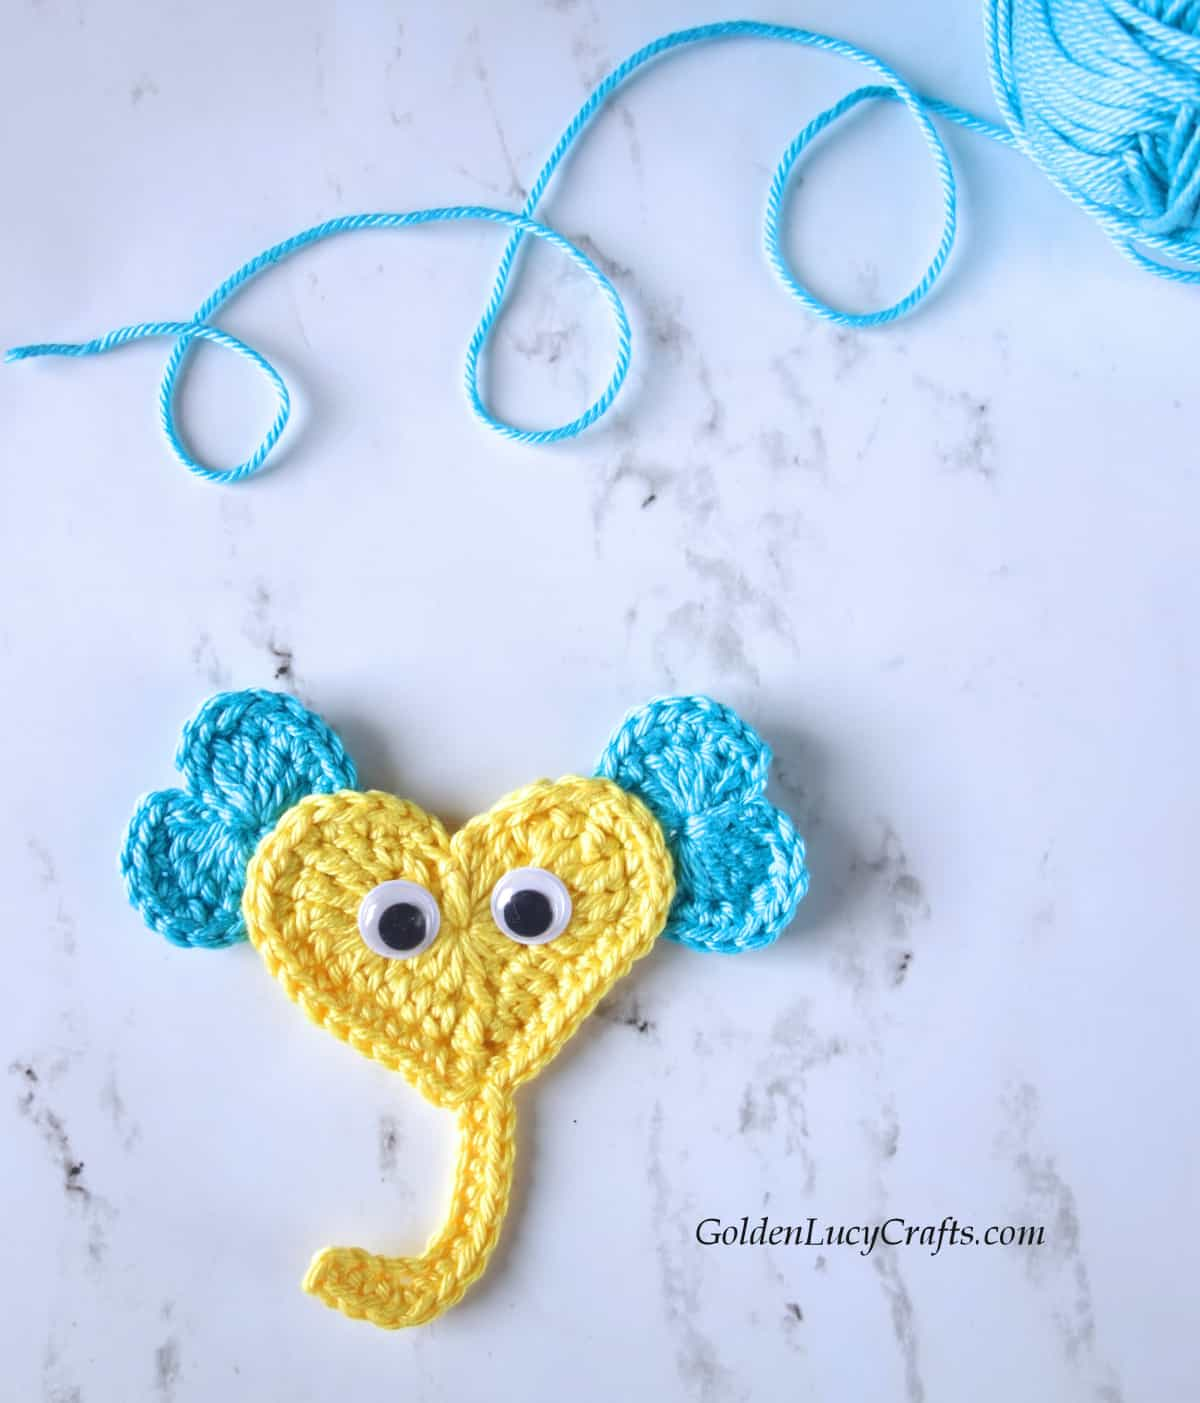 Crochet elephant made from hearts, applique